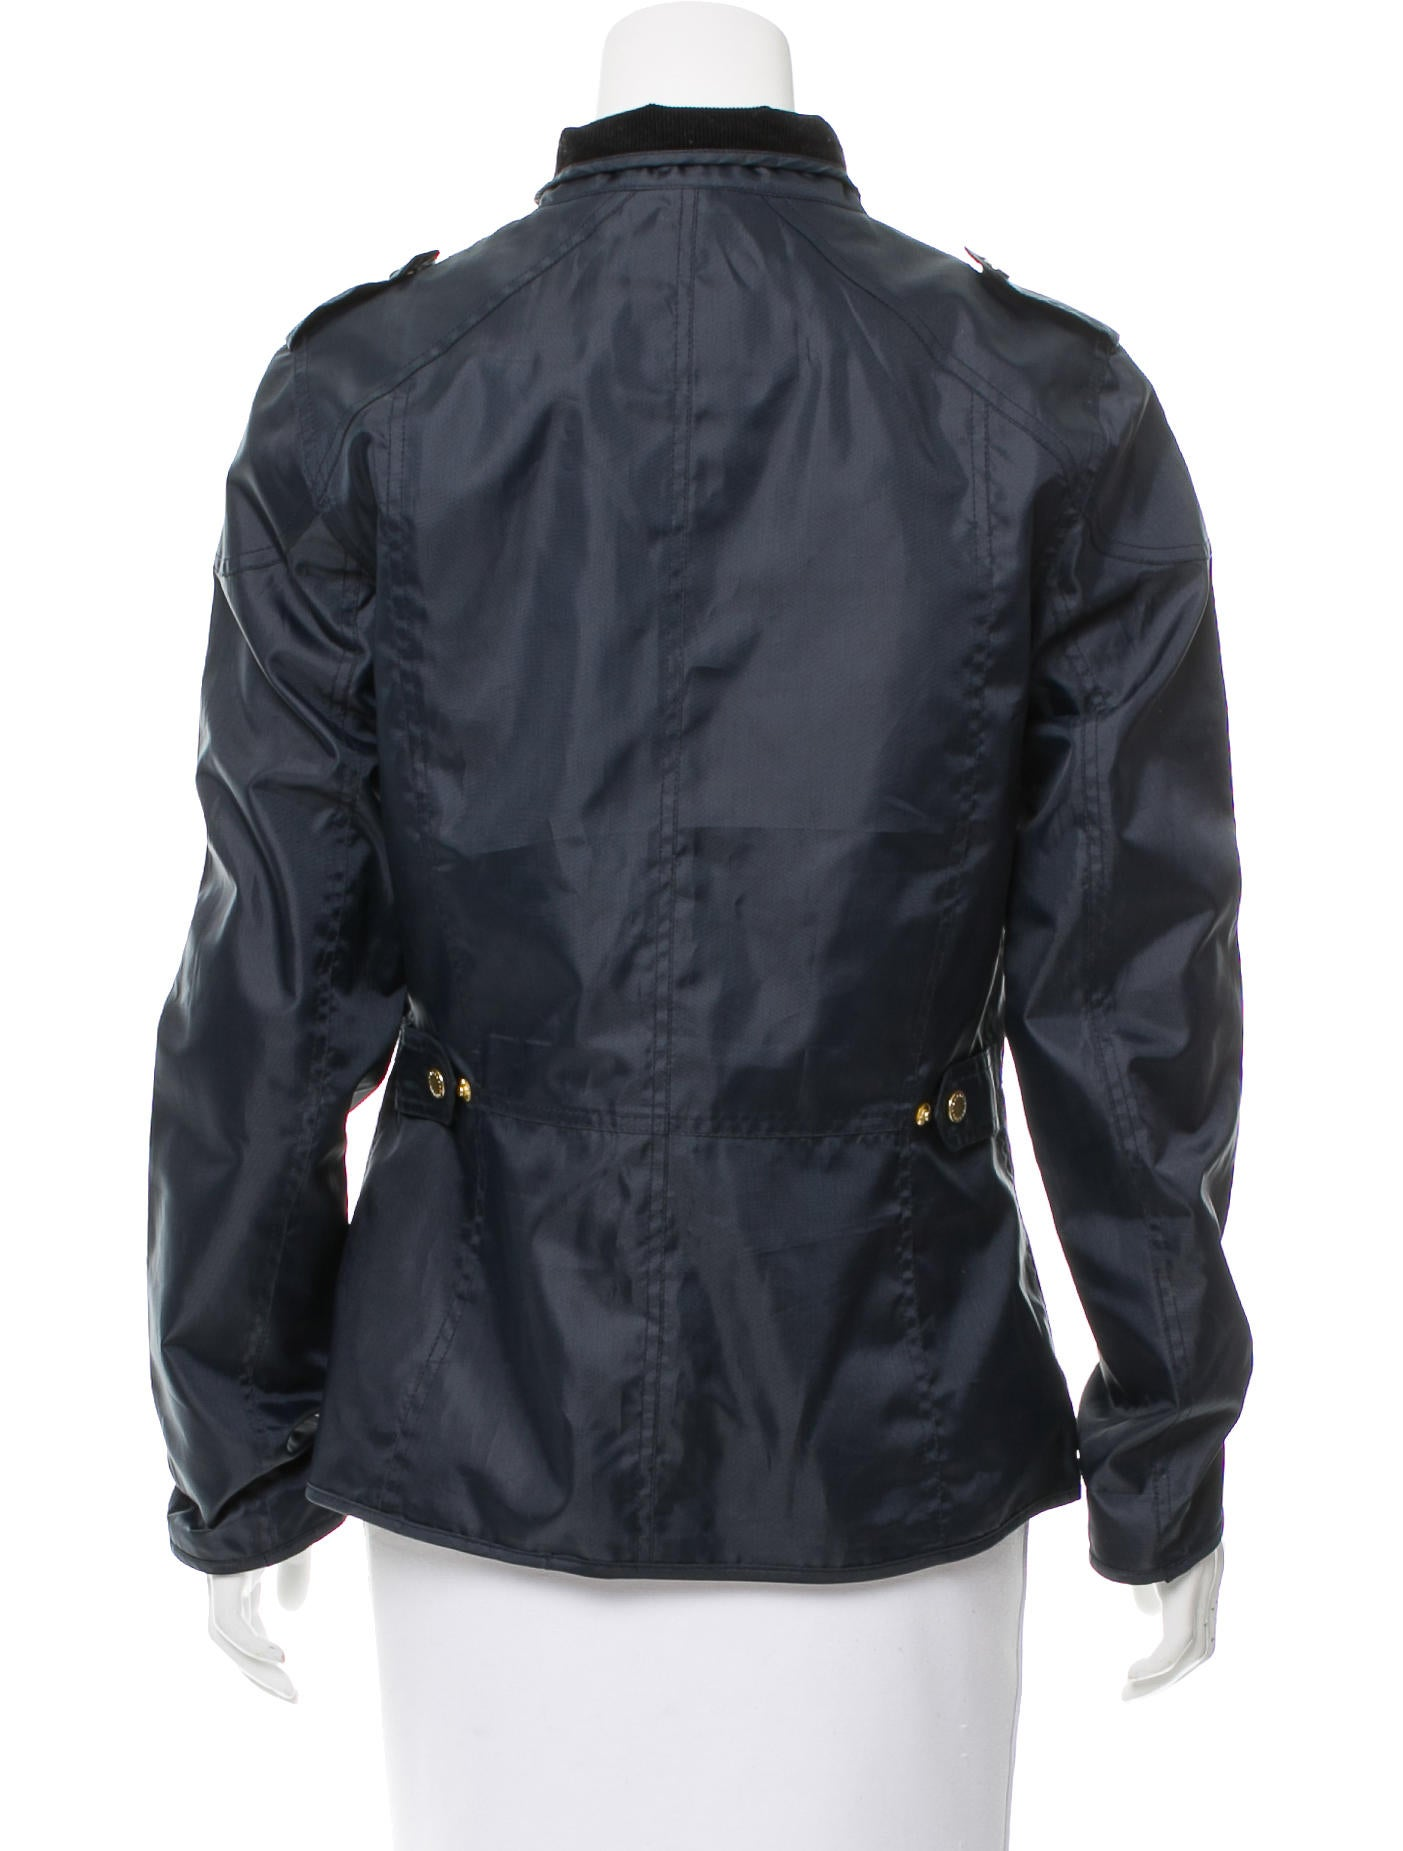 Barbour Lightweight Long Sleeve Jacket Clothing